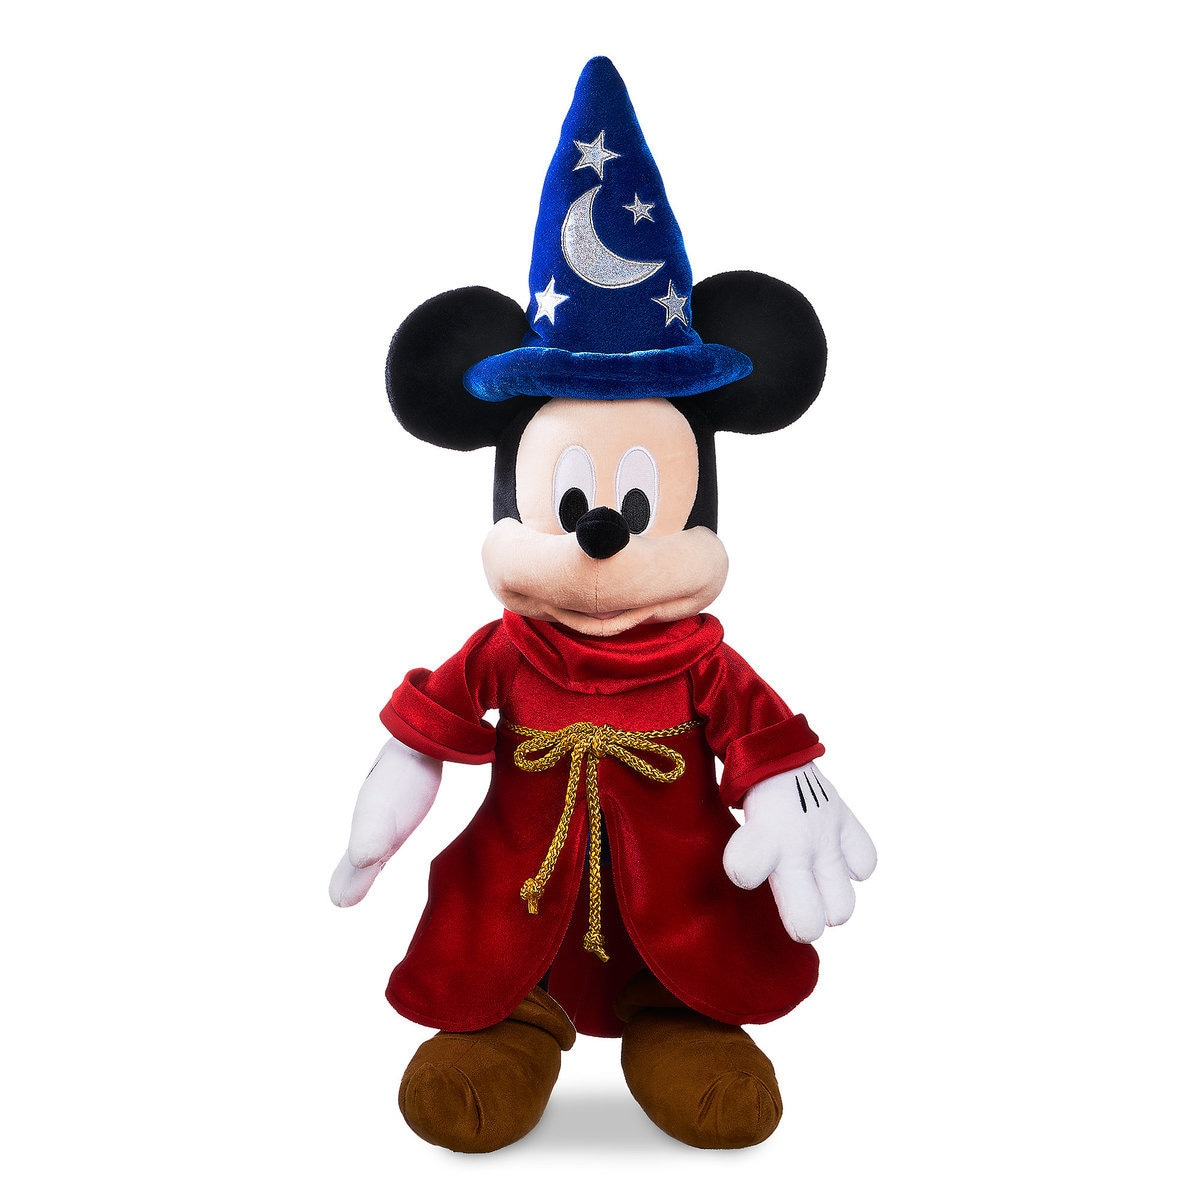 e7b752c9eed Product Image of Sorcerer Mickey Mouse Plush - Medium - Personalizable   1